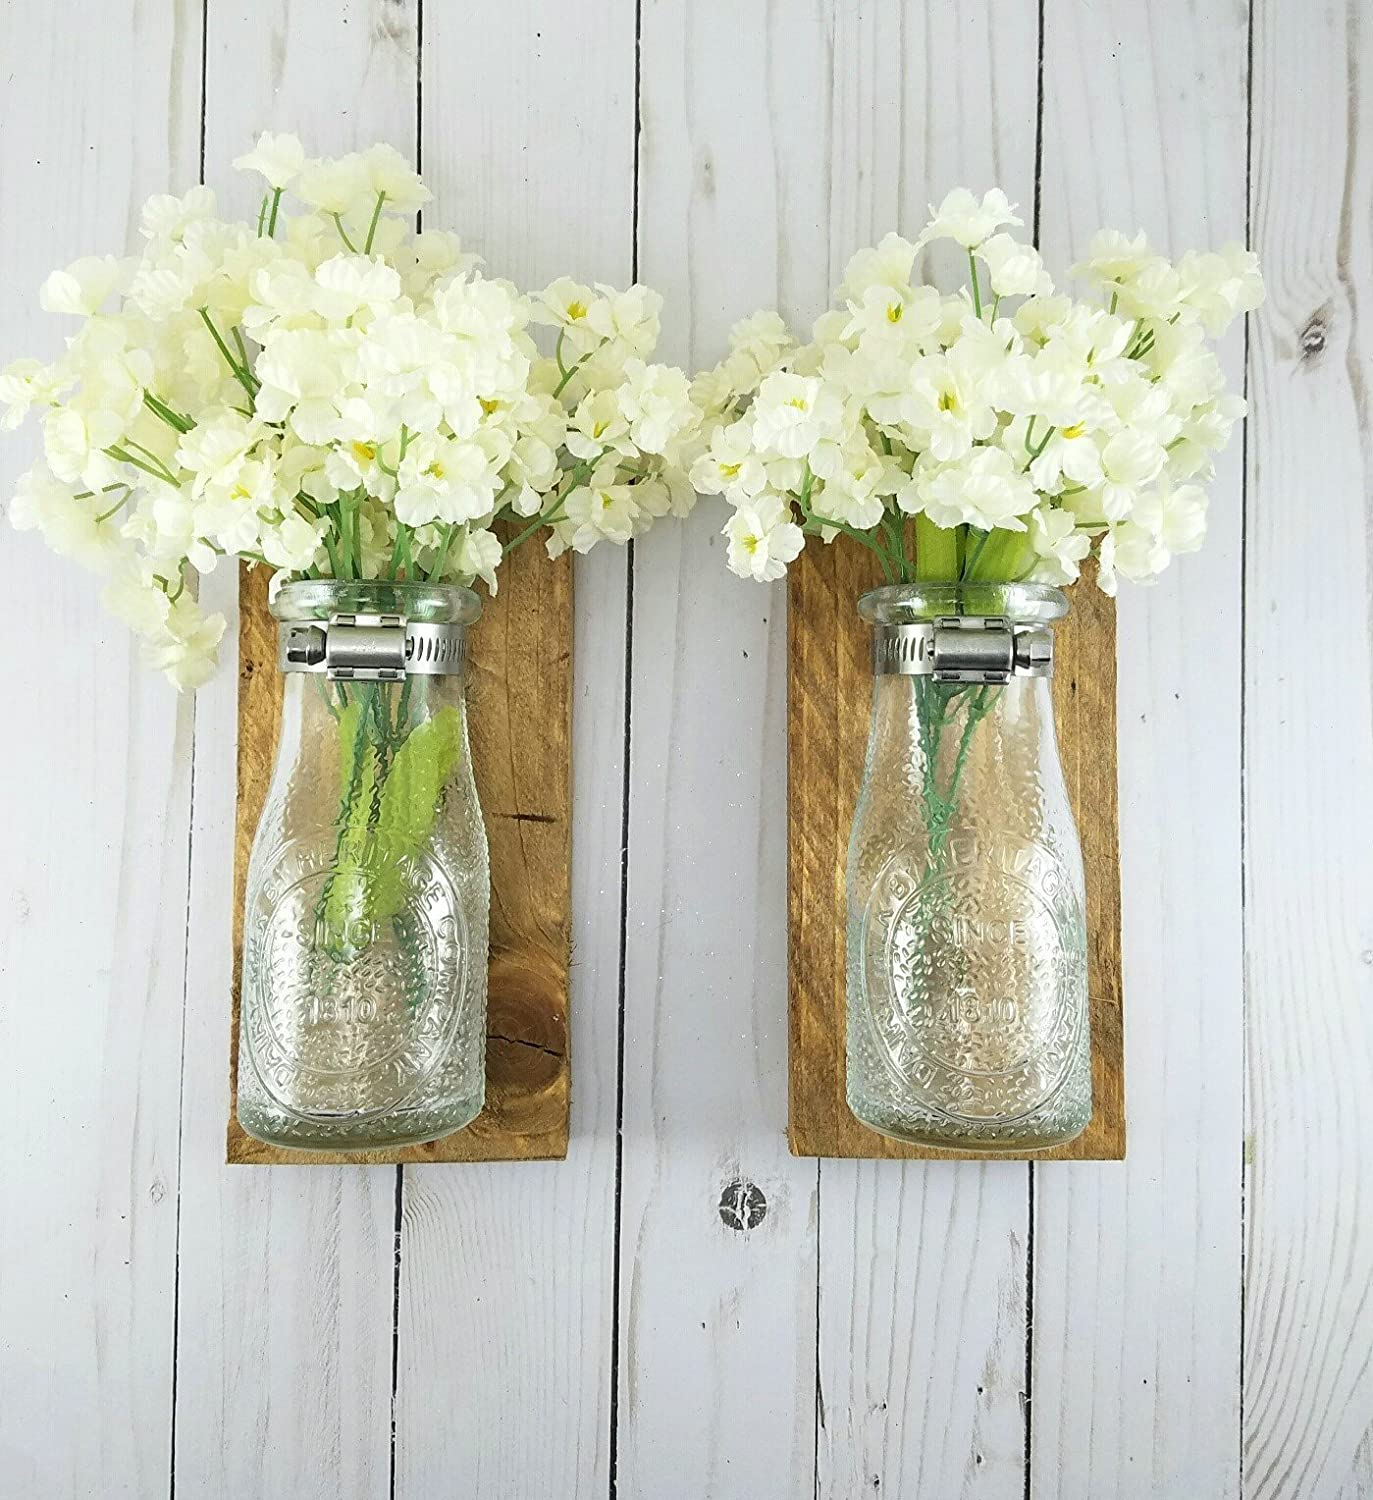 Amazon reclaimed wood wall decor dairy bottle flower holder amazon reclaimed wood wall decor dairy bottle flower holder milk bottle bud vase wall vase farmhouse home decor bathroom wall decor handmade reviewsmspy